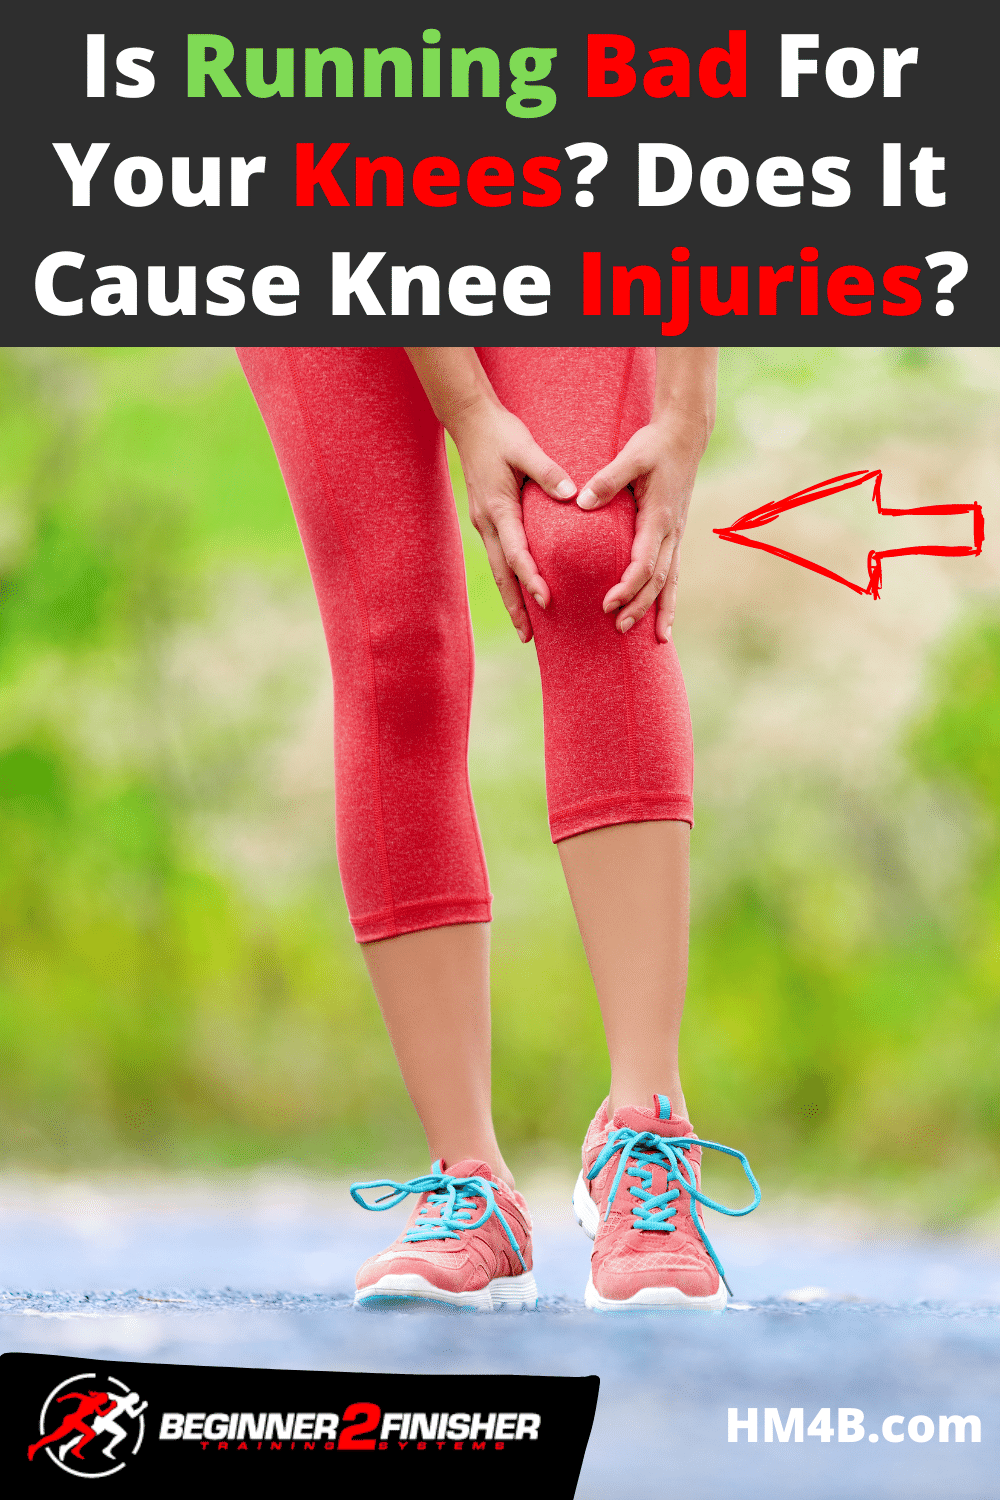 Is Running Bad For Your Knees? Find Out How To Strengthen Your Knees?